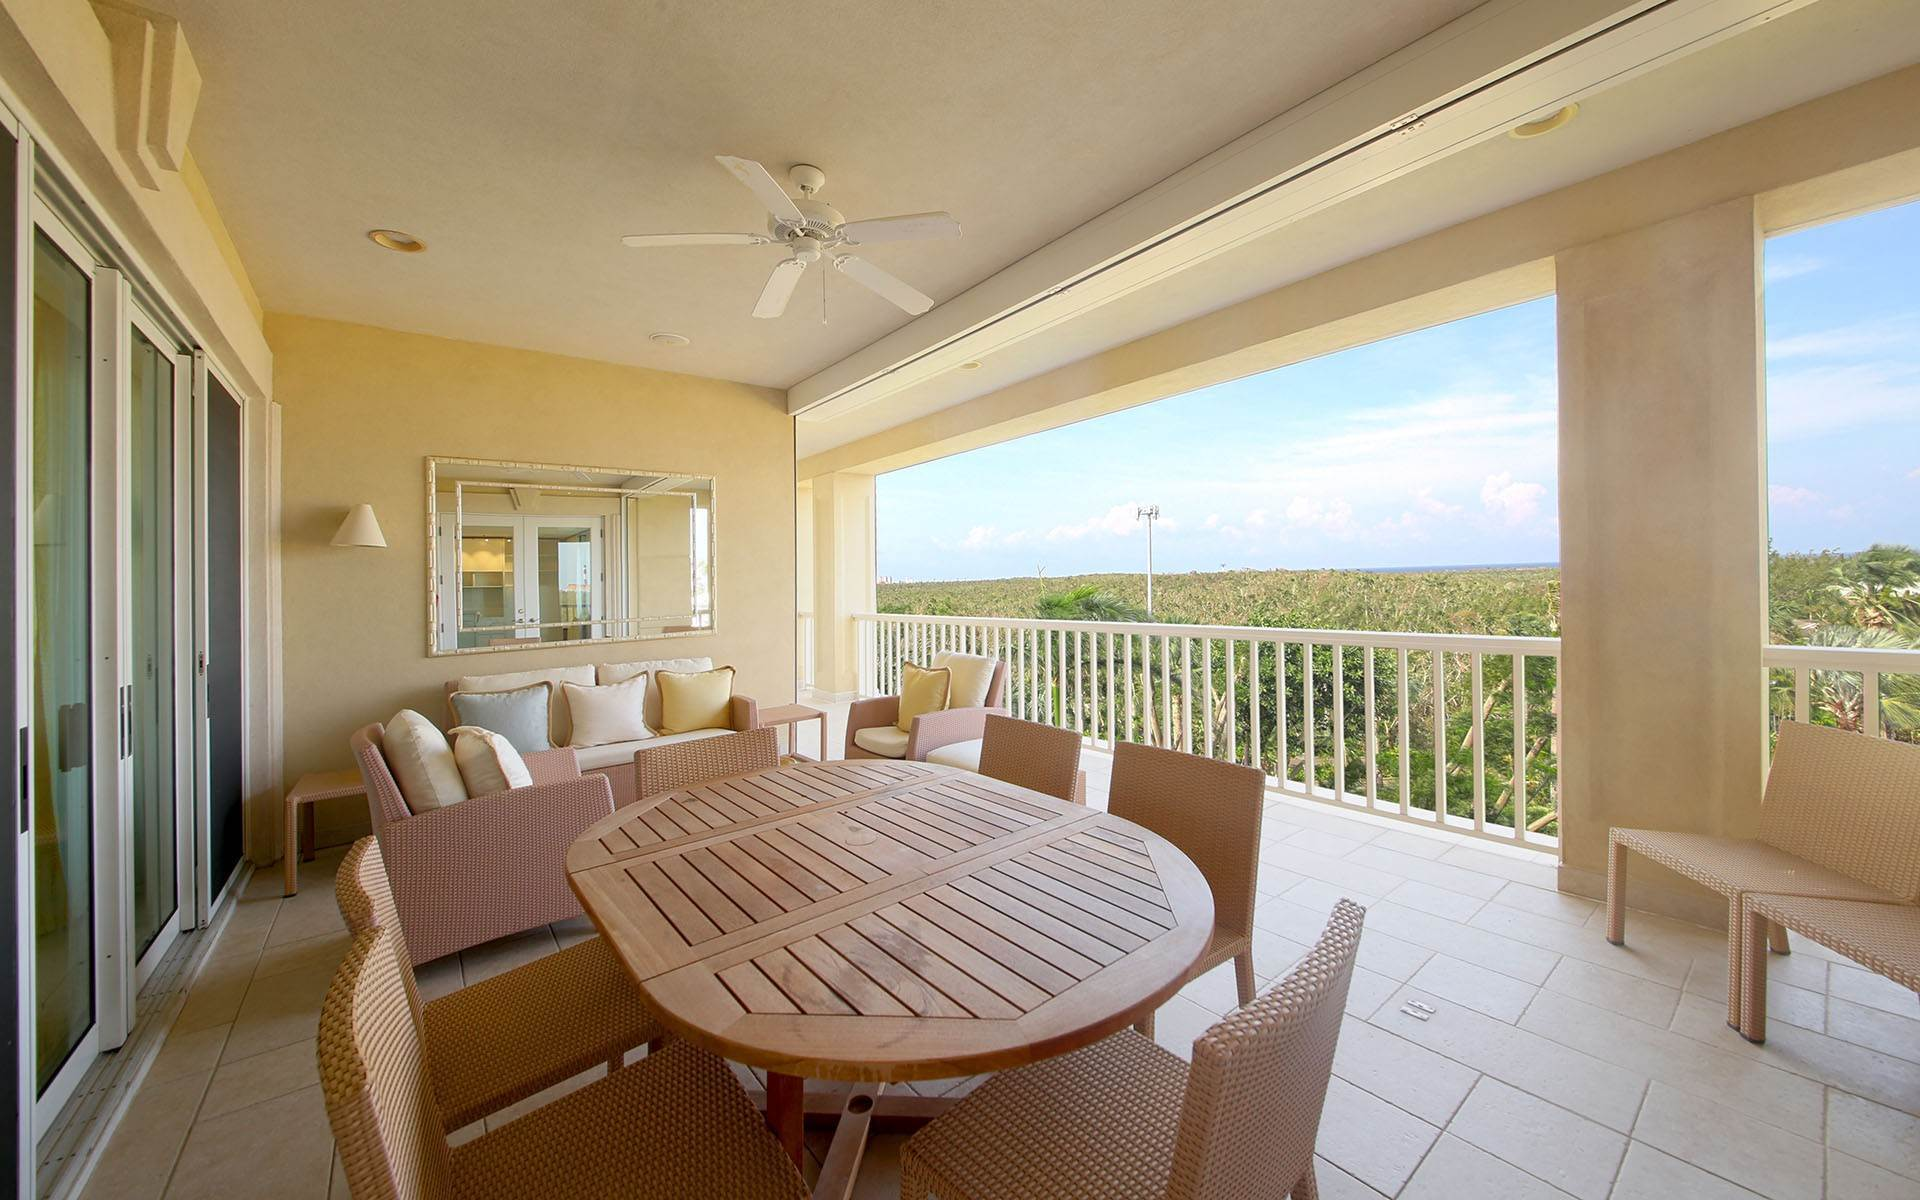 Co-op / Condo for Rent at Lyford Cay Apartment with Sea Views Lyford Cay, Nassau And Paradise Island, Bahamas